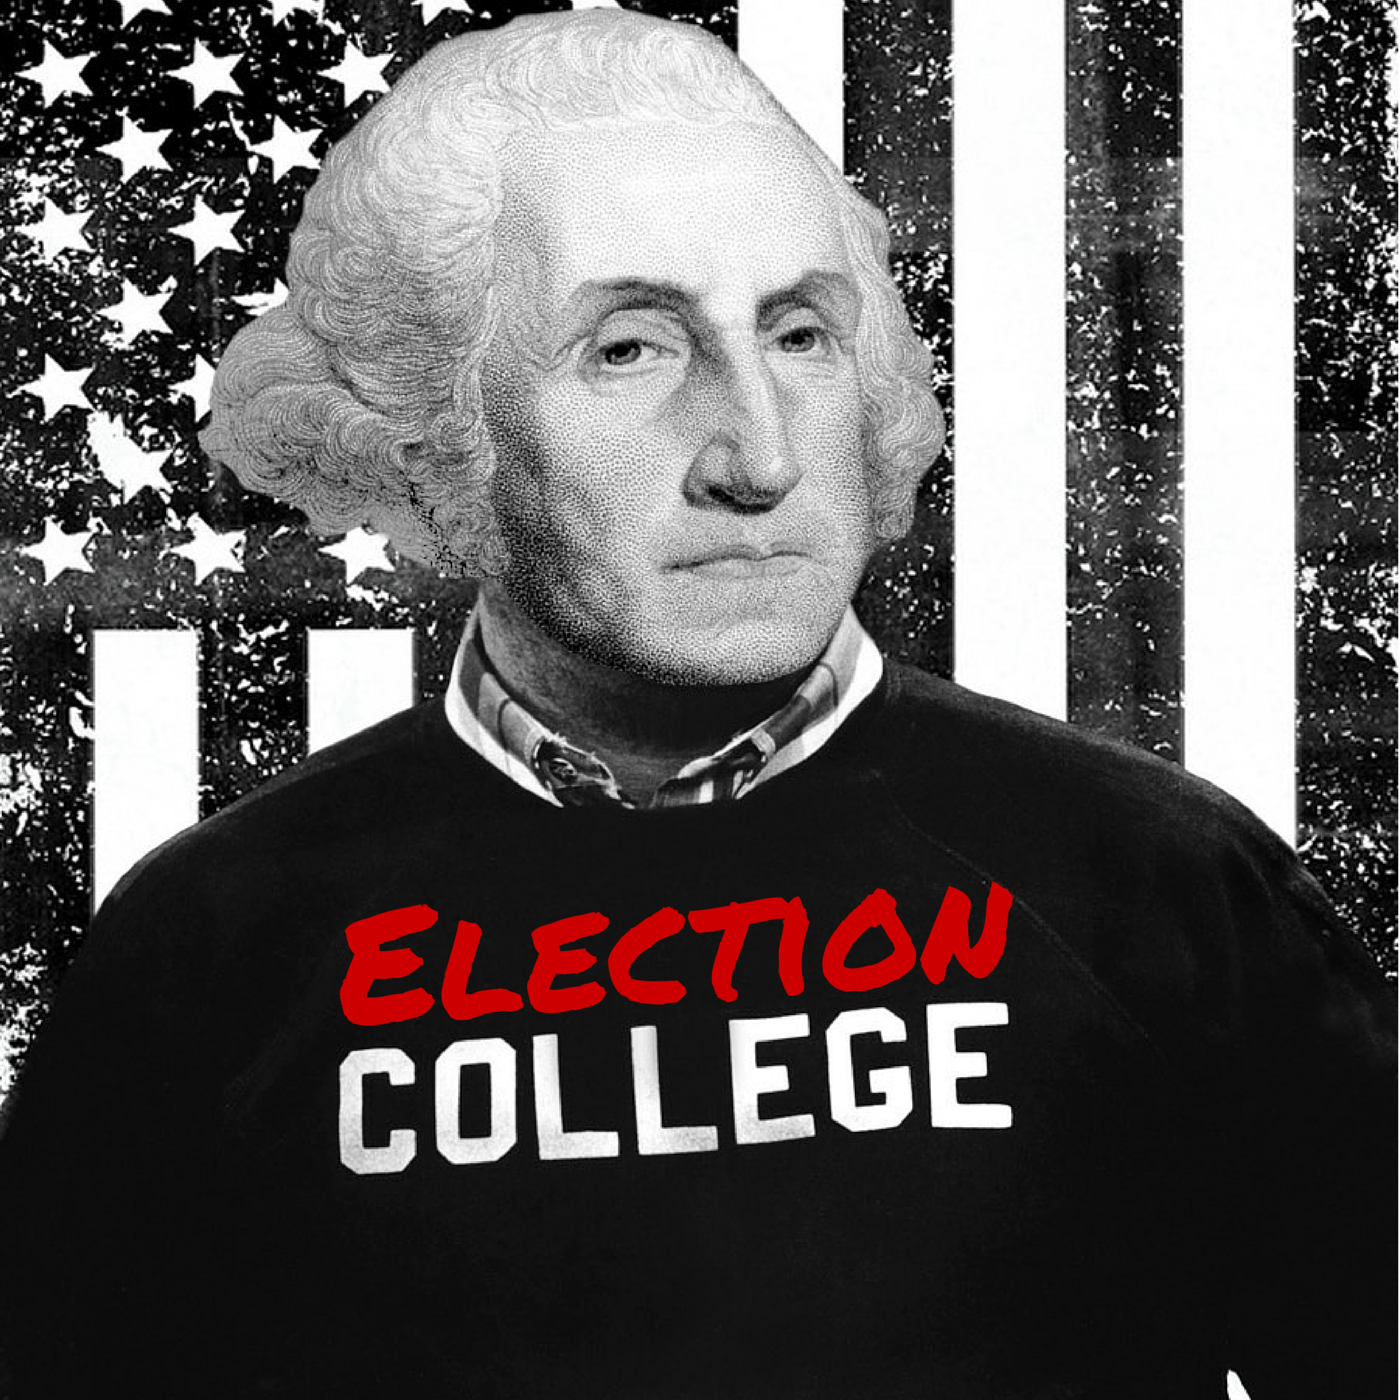 John Adams - Part 1 | Episode #108 | Election College: United States Presidential Election History